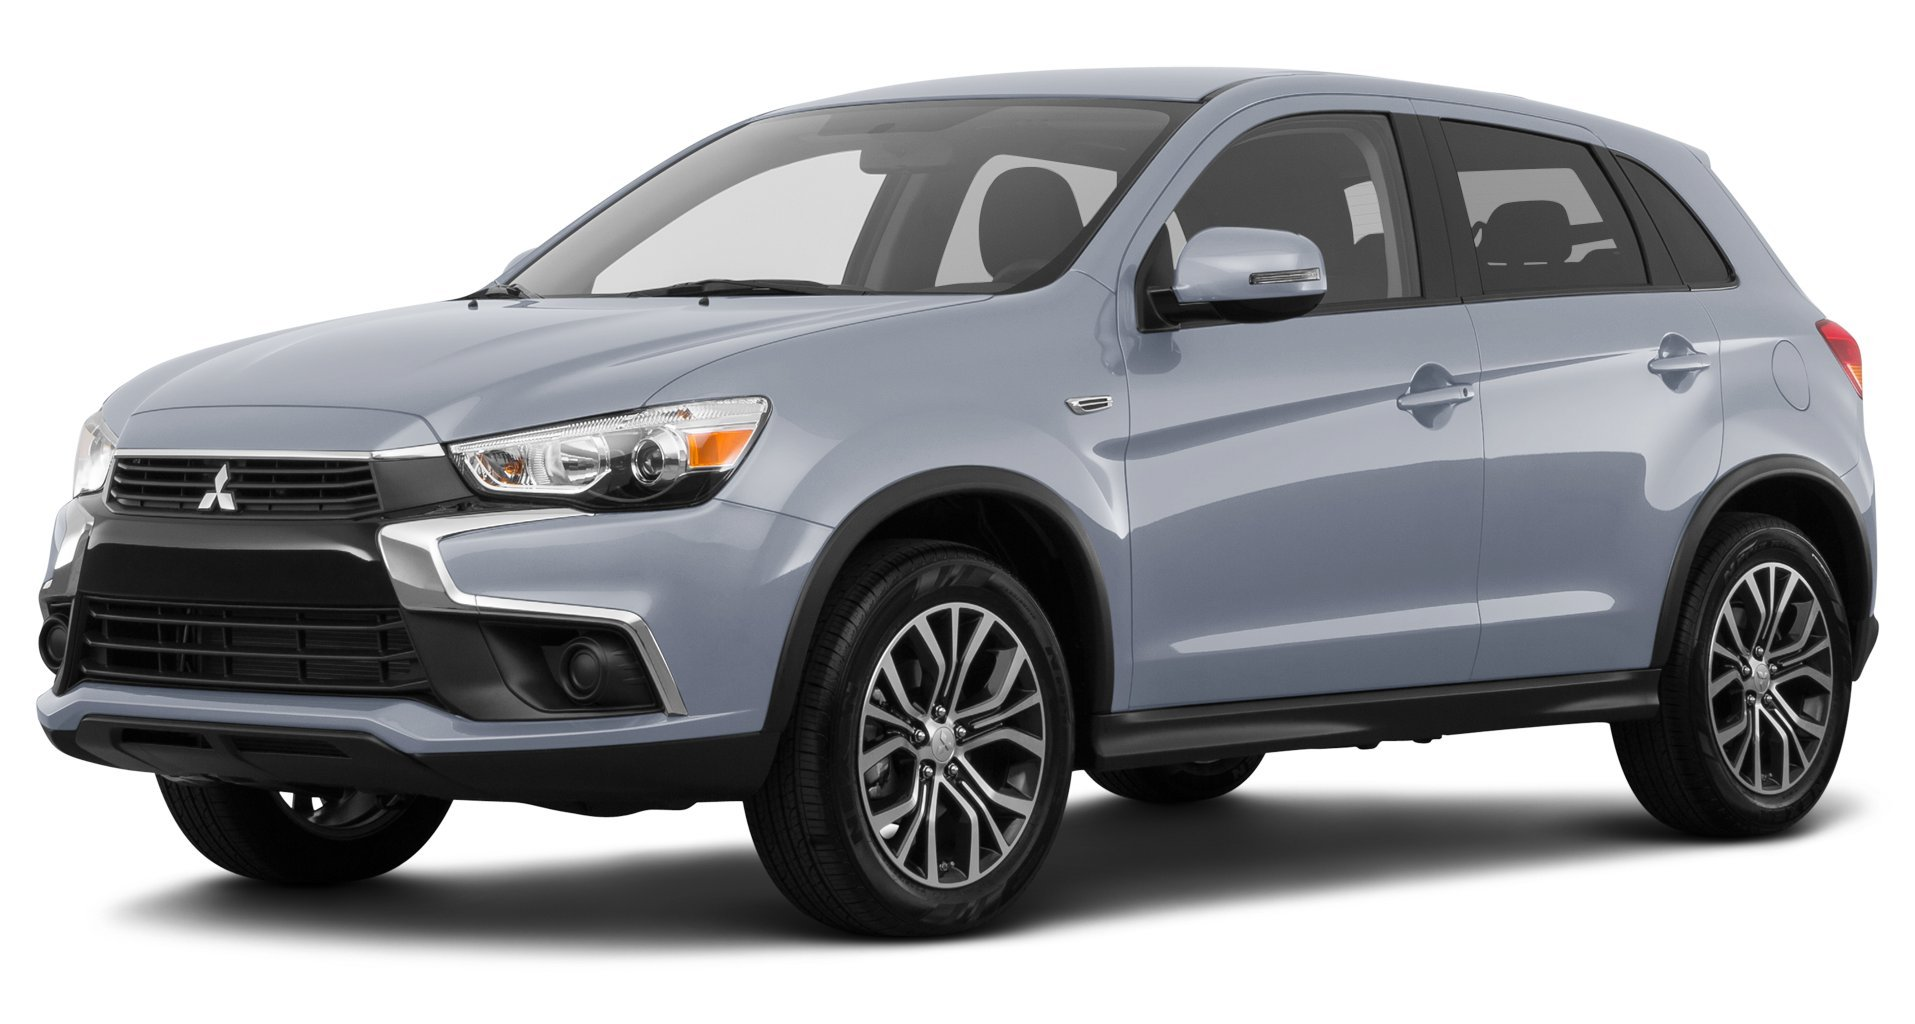 2017 mitsubishi outlander sport reviews images and specs vehicles. Black Bedroom Furniture Sets. Home Design Ideas